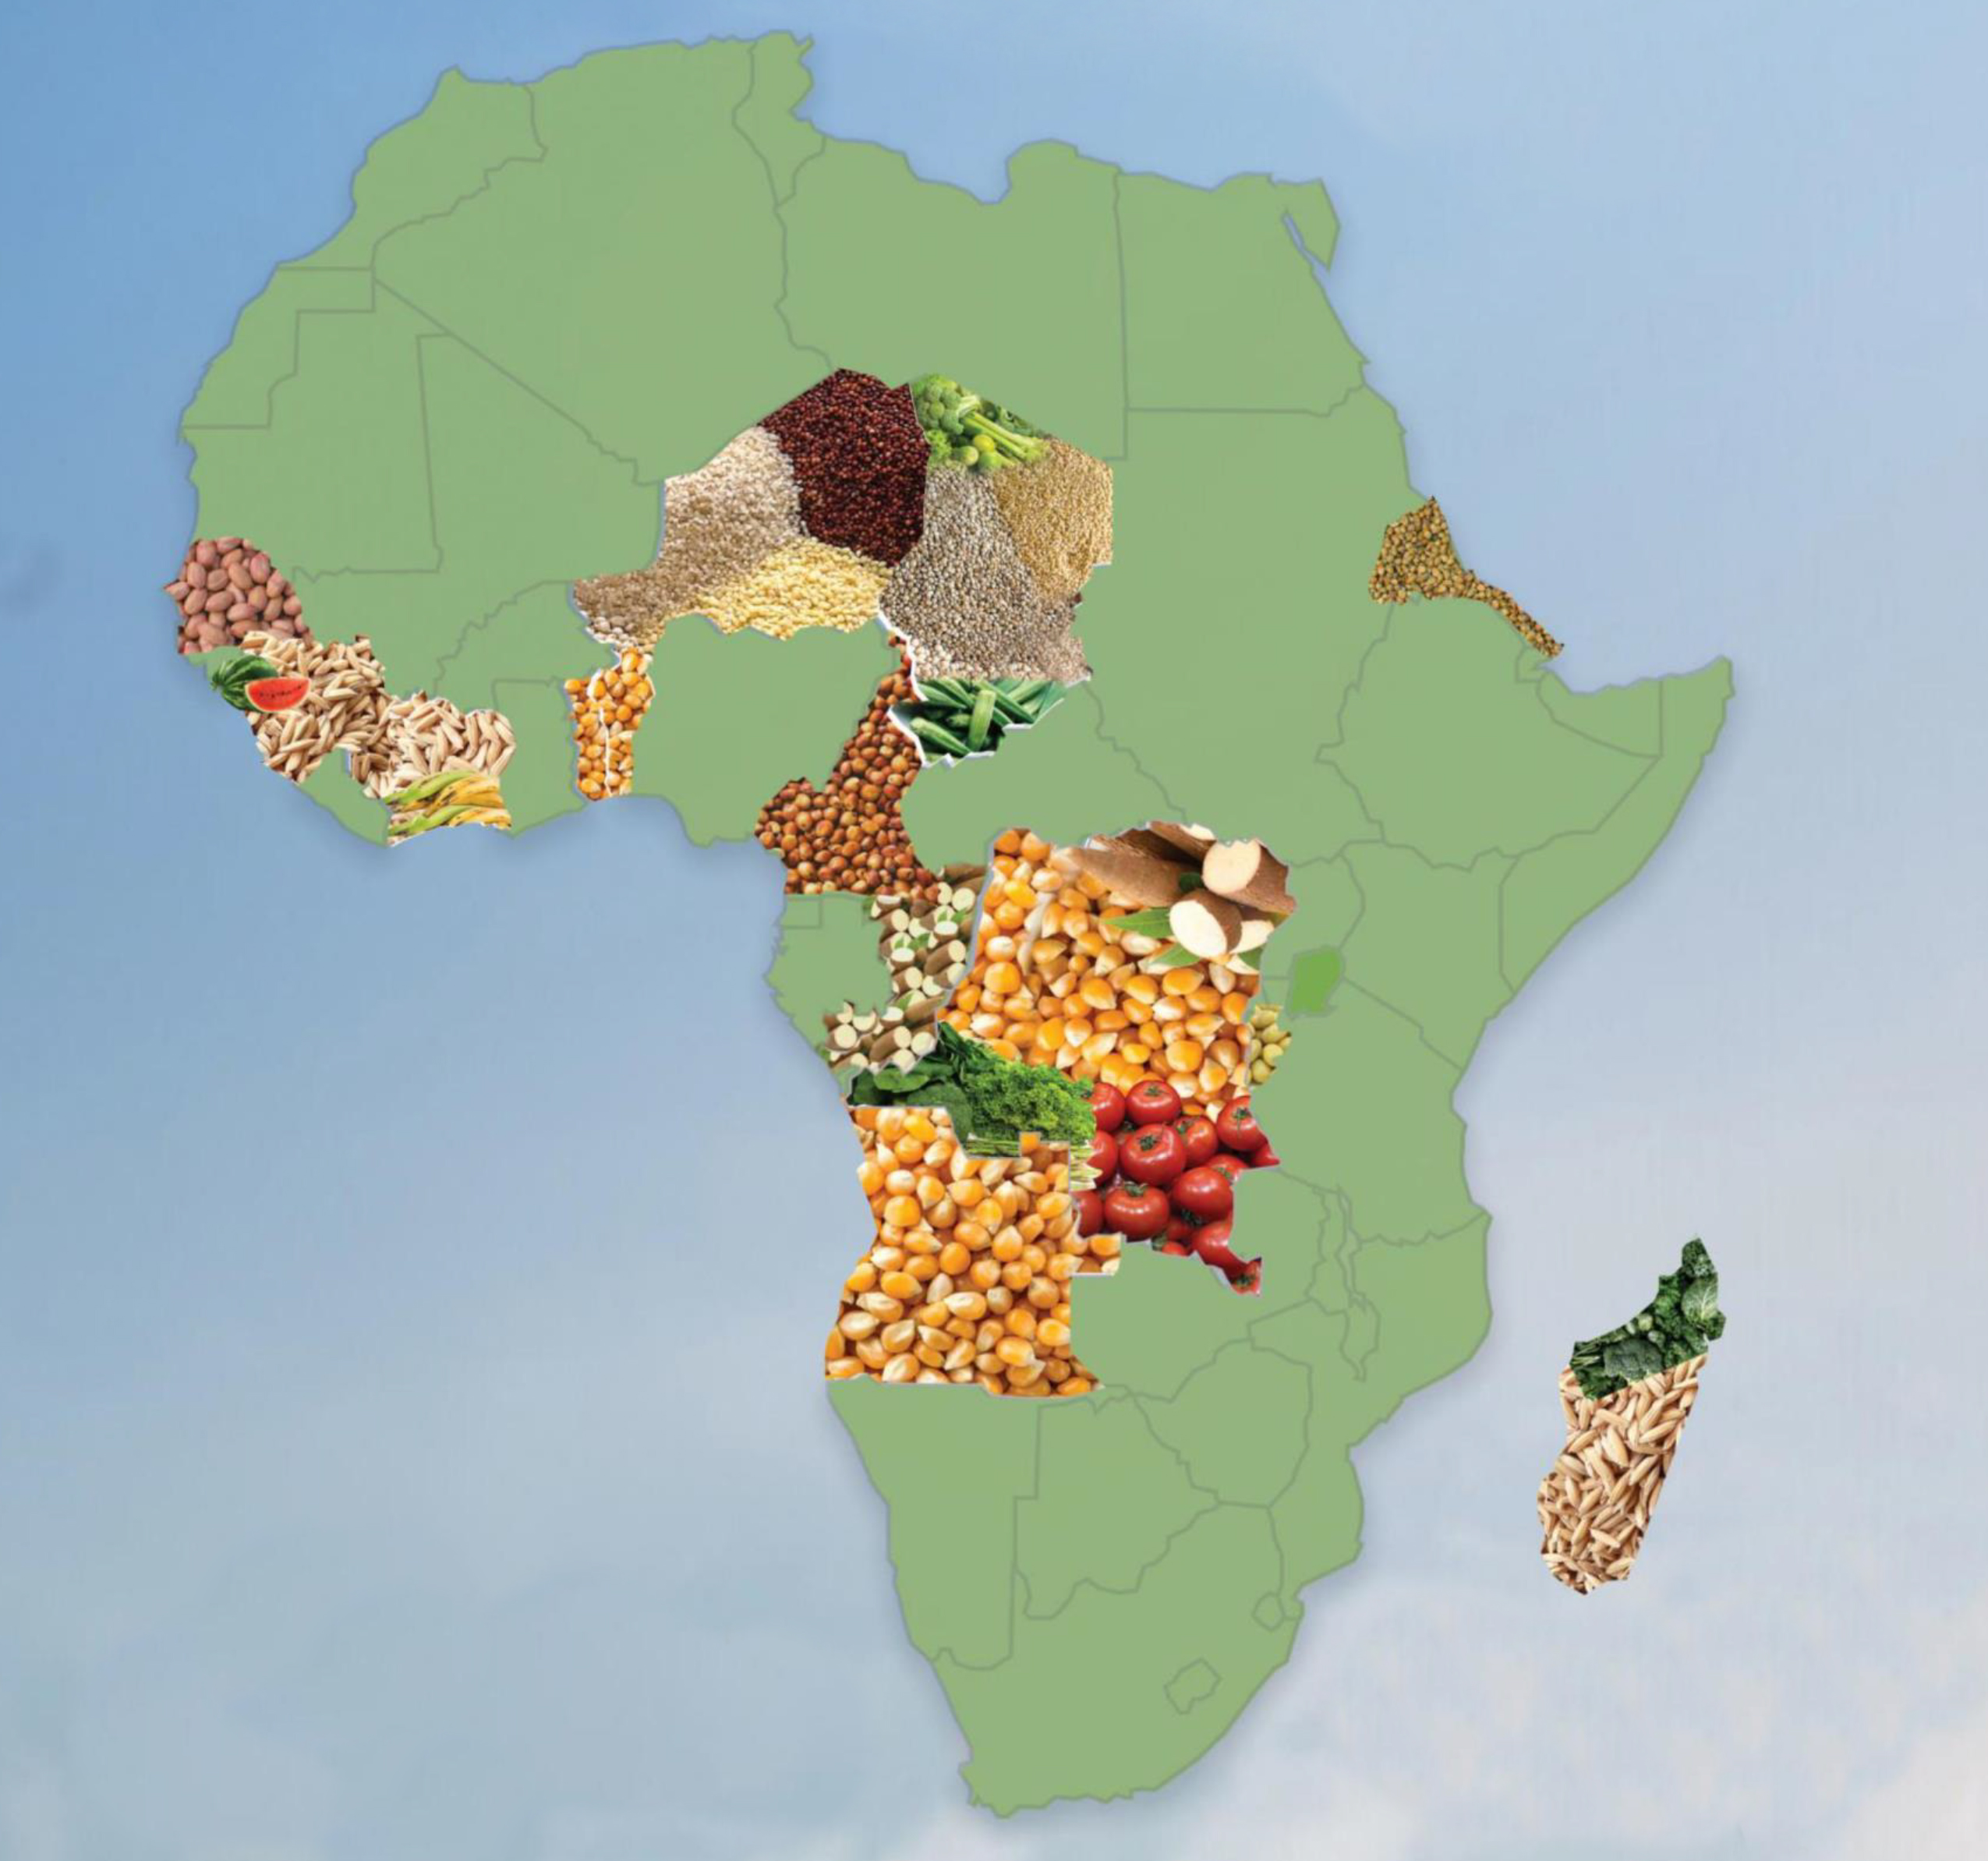 Study of Seed Systems development opportunities in 15 African countries and development of business plan for next 5 years for seeking funding opportunities